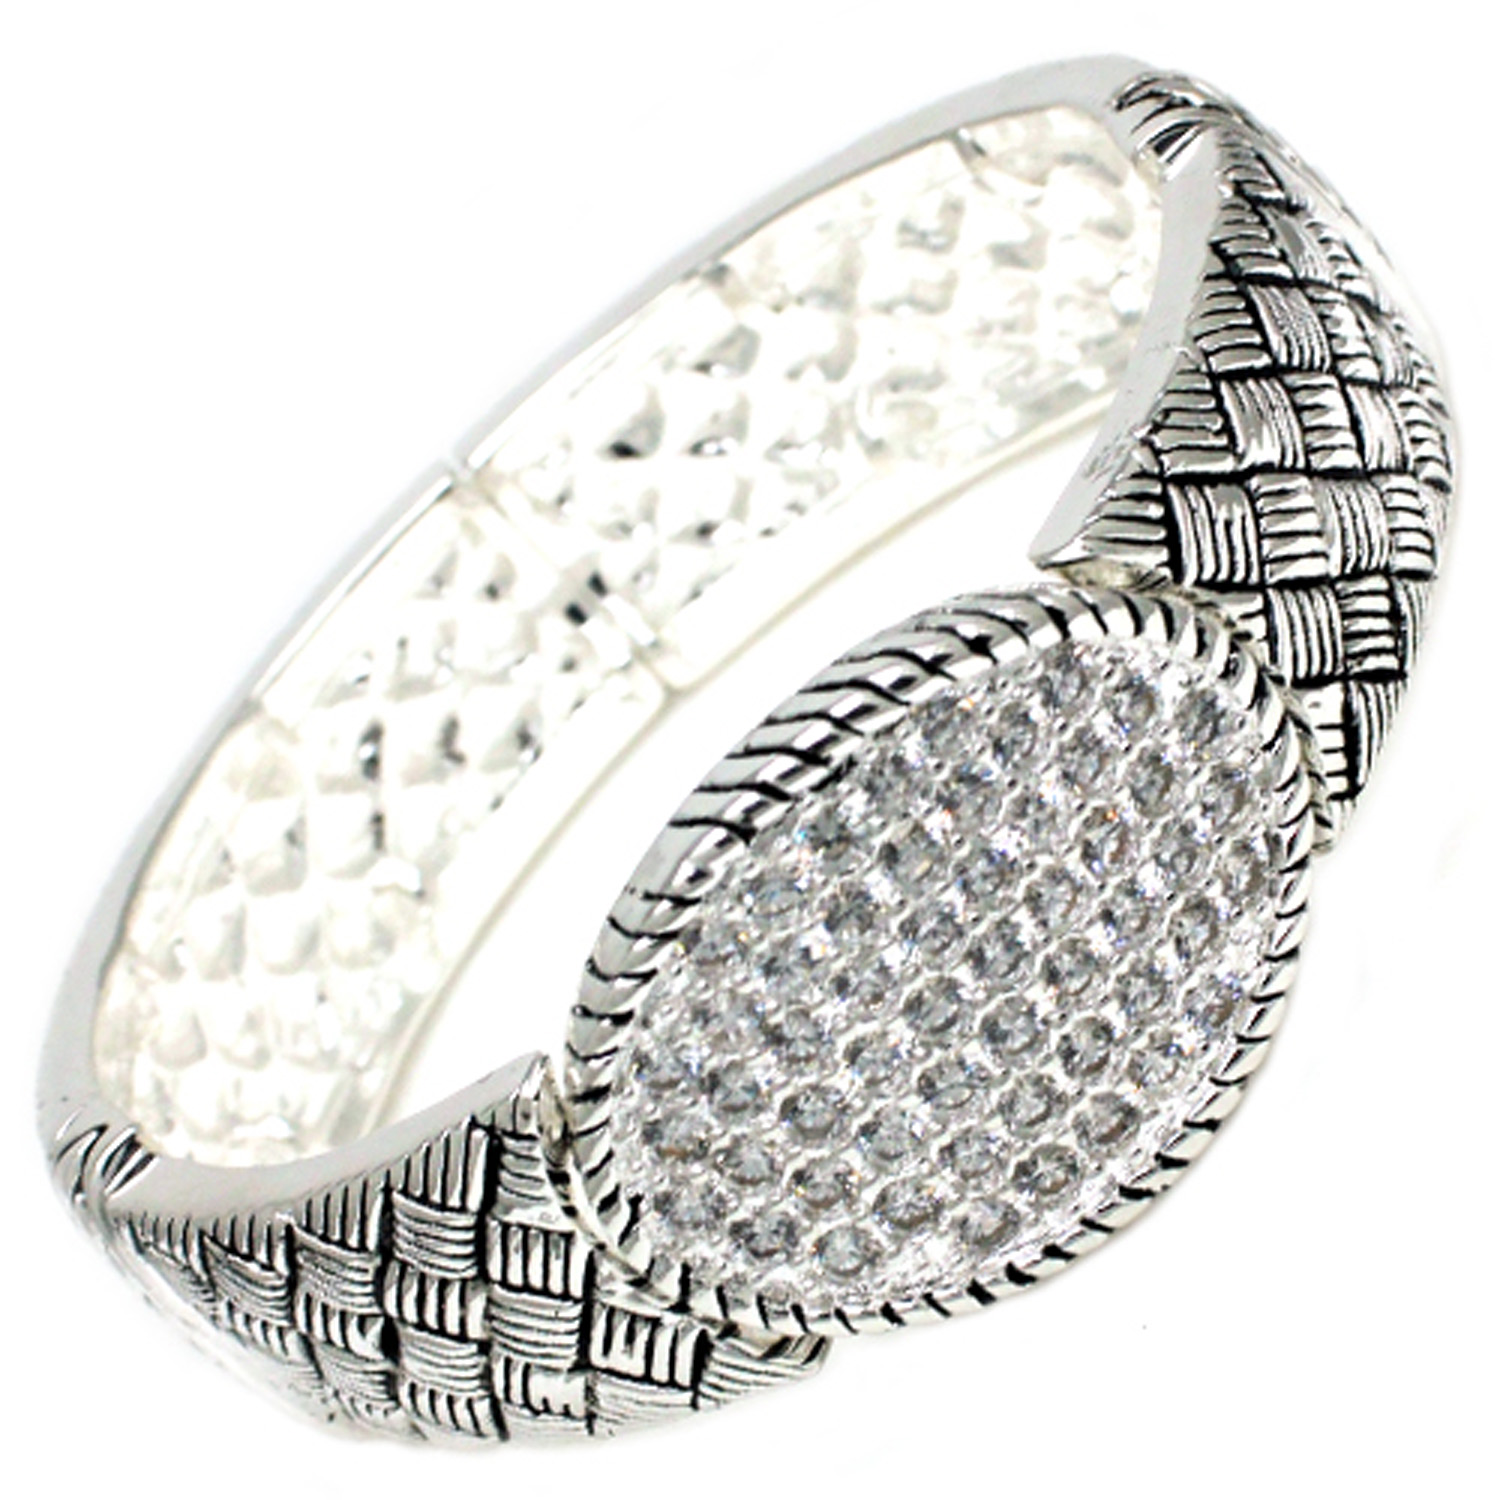 Antique Silver Plated Brass CZ Covered BANGLE